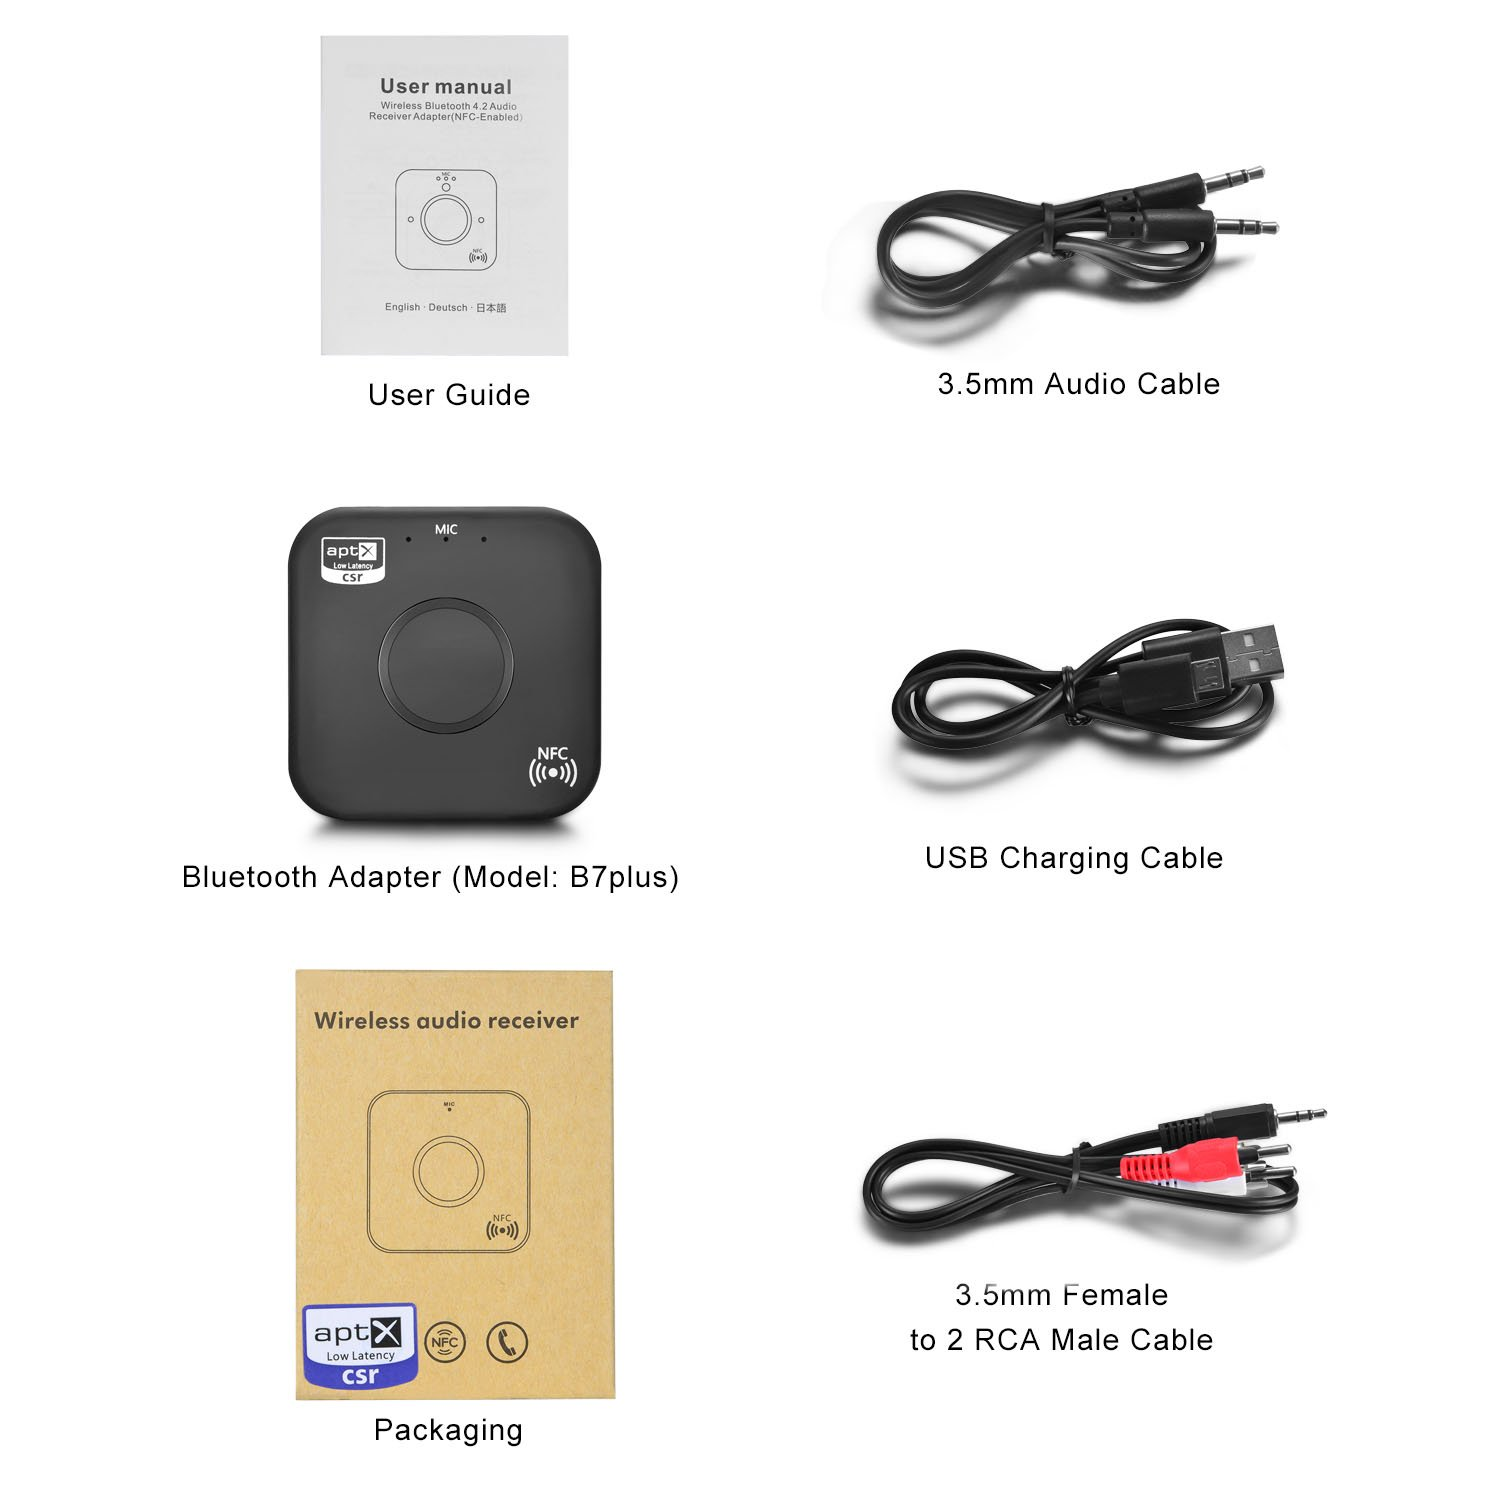 Bluetooth 4.2 Receiver Adapter/Car Kit,Csr aptX Low Latency,Kroaprao Wireless Bluetooth 3.5mm AUX and RCA HiFi Audio Receiver Devices 300mAh (10Hrs,NFC,Hands-Free Calling) for Home Stereo System by KROA PRAO (Image #7)